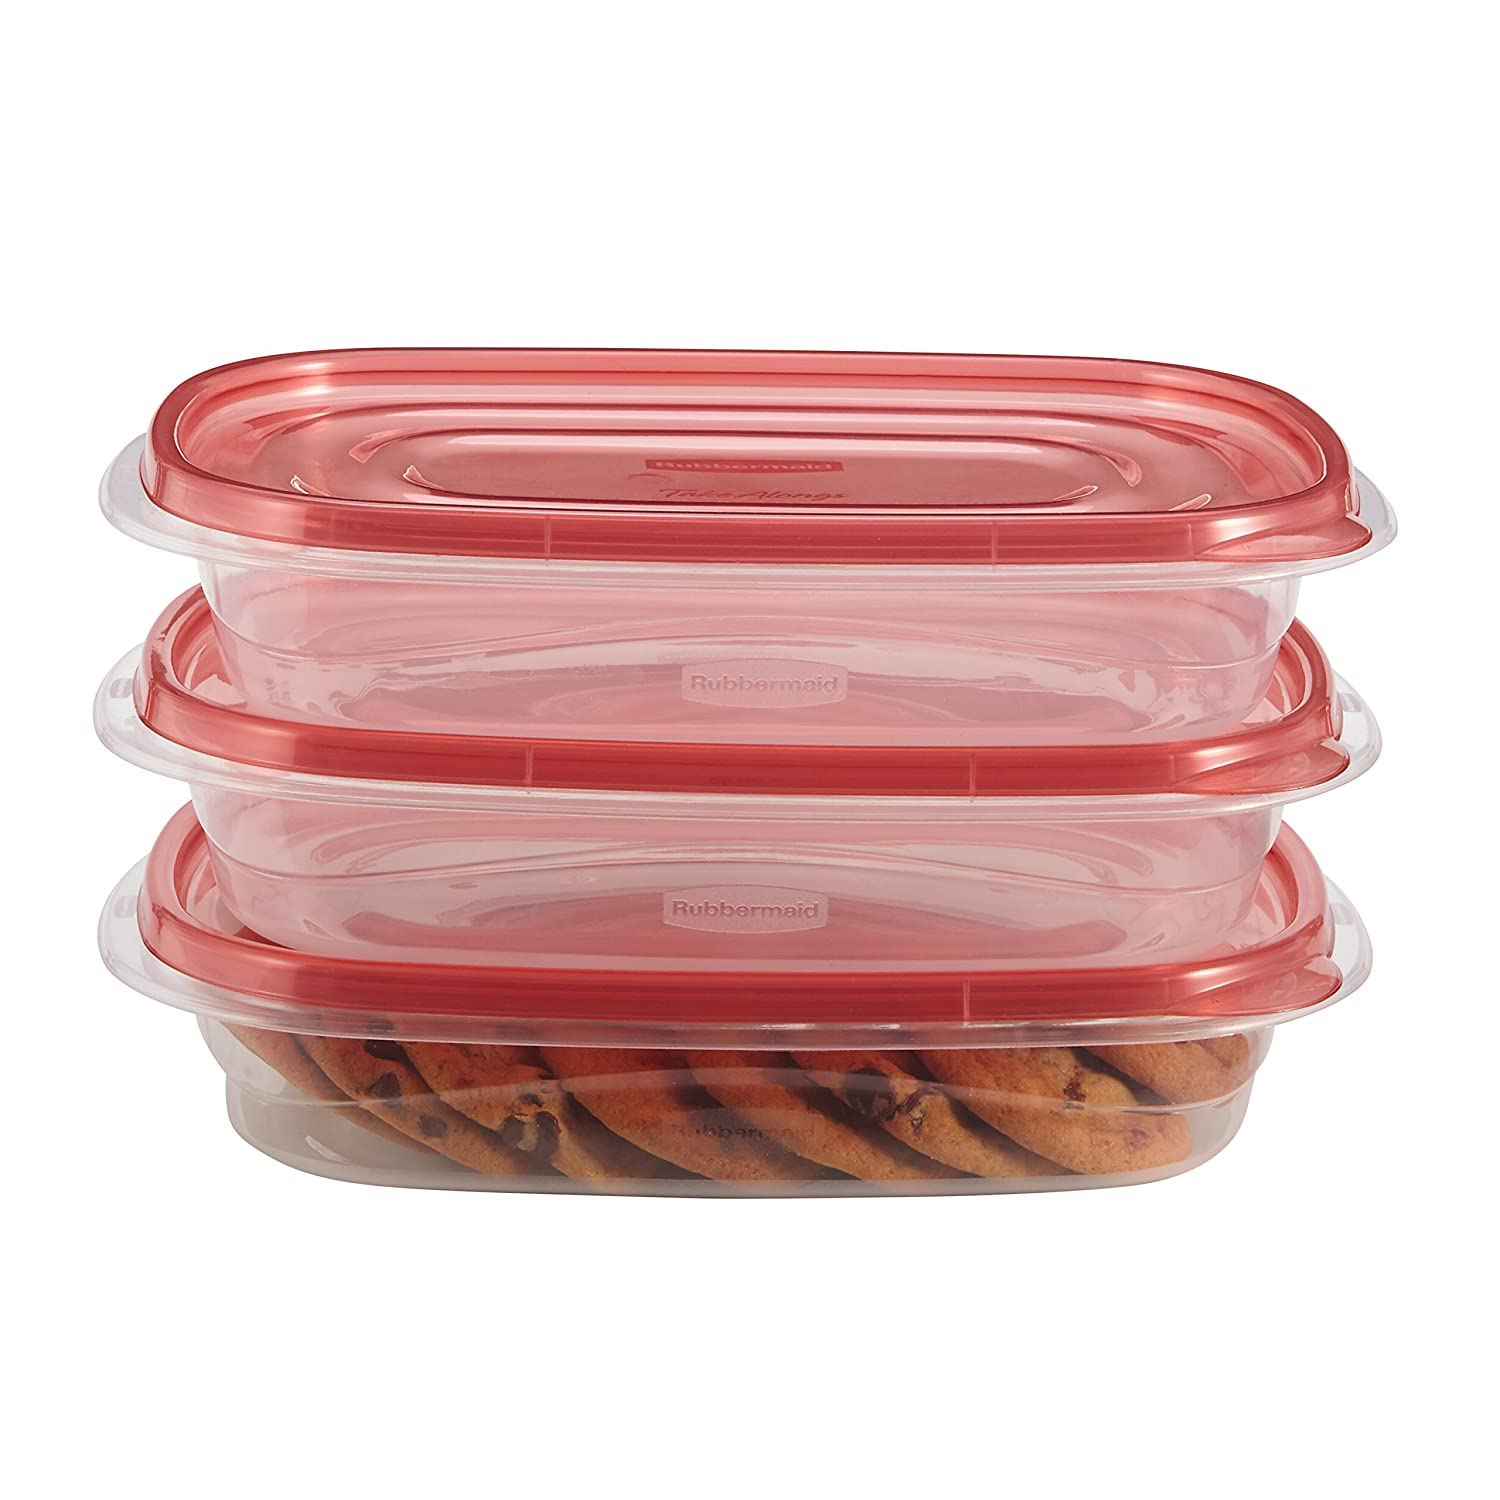 Rubbermaid TakeAlongs Rectangle Food Storage Container, 4 Cup, Tint Chili, 3 Count 1824171